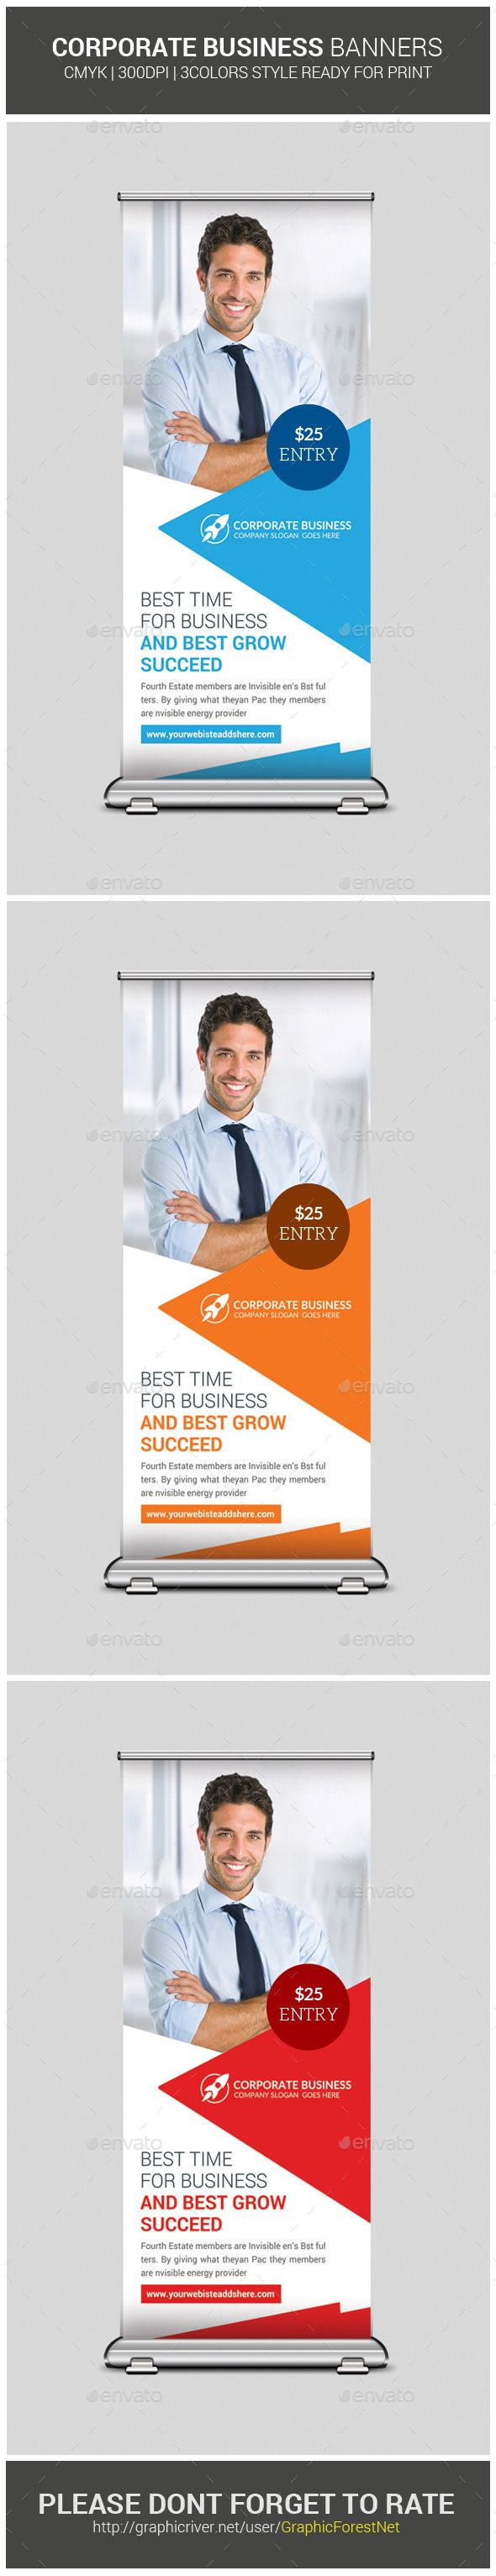 """Corporate Business Rollup Banners by GraphicForestNet Corporate Business Rollup BannersSpecification CMYK Color Mode 300 DPI Resolution Size 30""""x70"""" 0.25"""" Bleed in Each Side FeaturesFr"""